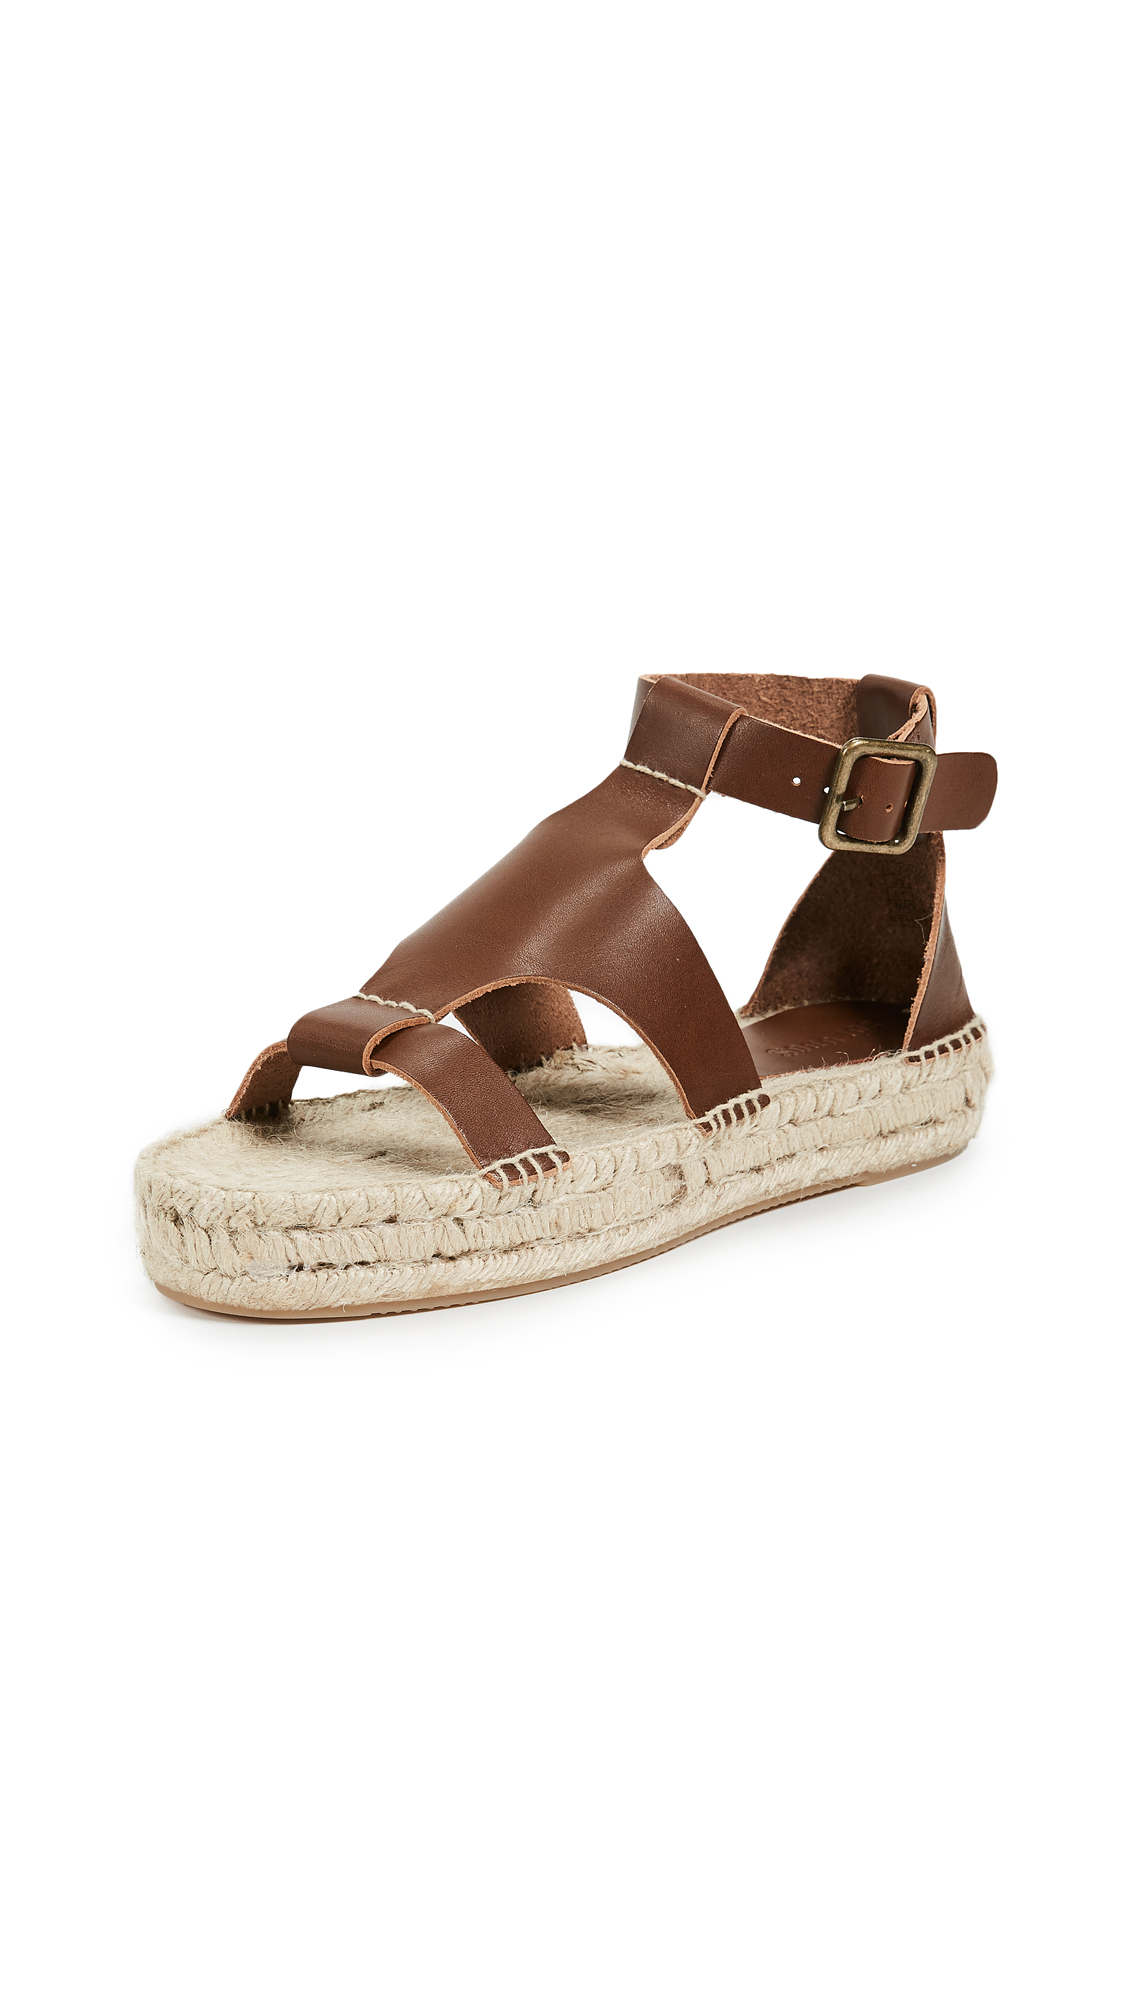 Soludos Banded Shield Sandals - Walnut